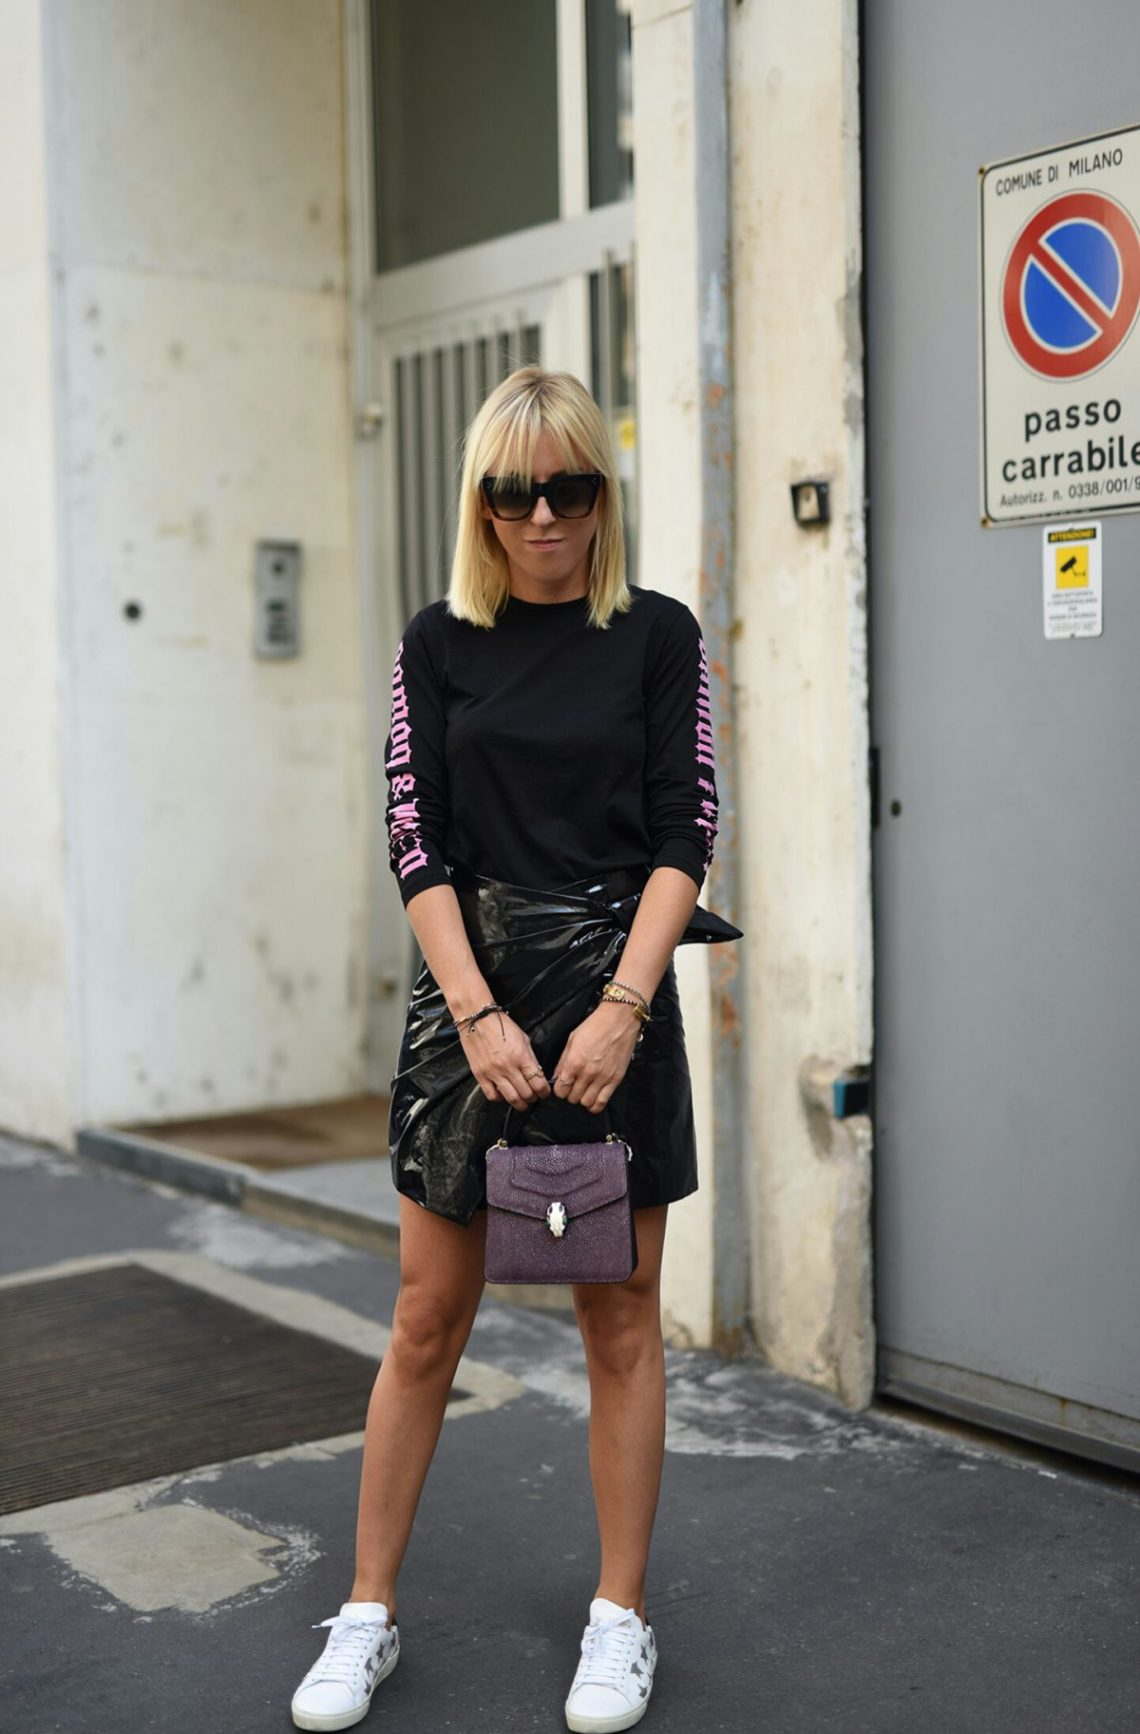 isabel-marant-leather-skirt-tanja-trutschnig-blogger-bazaar-mfw-saint-laurent-star-sneaker-3